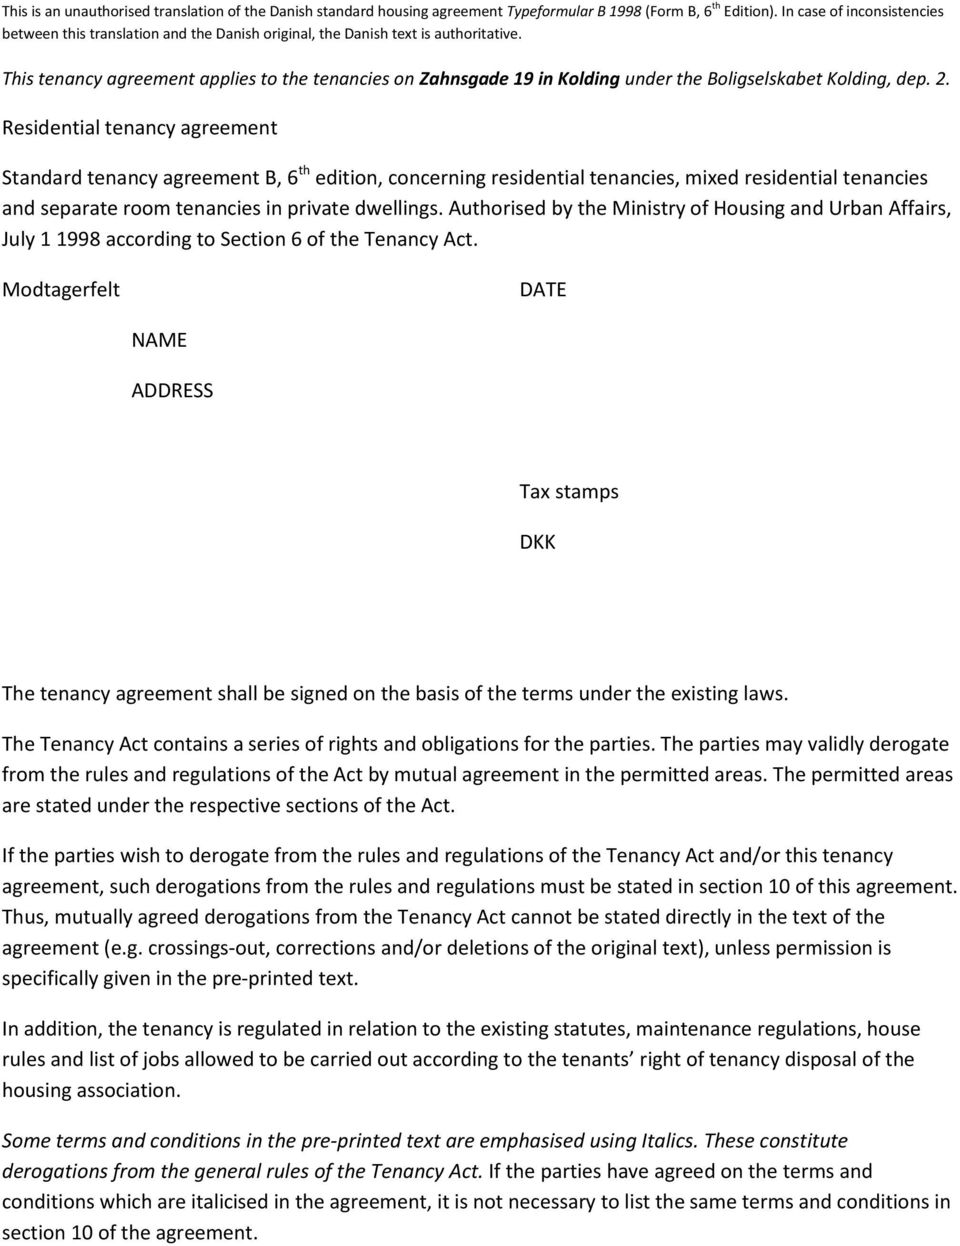 This Tenancy Agreement Applies To The Tenancies On Zahnsgade 19 In